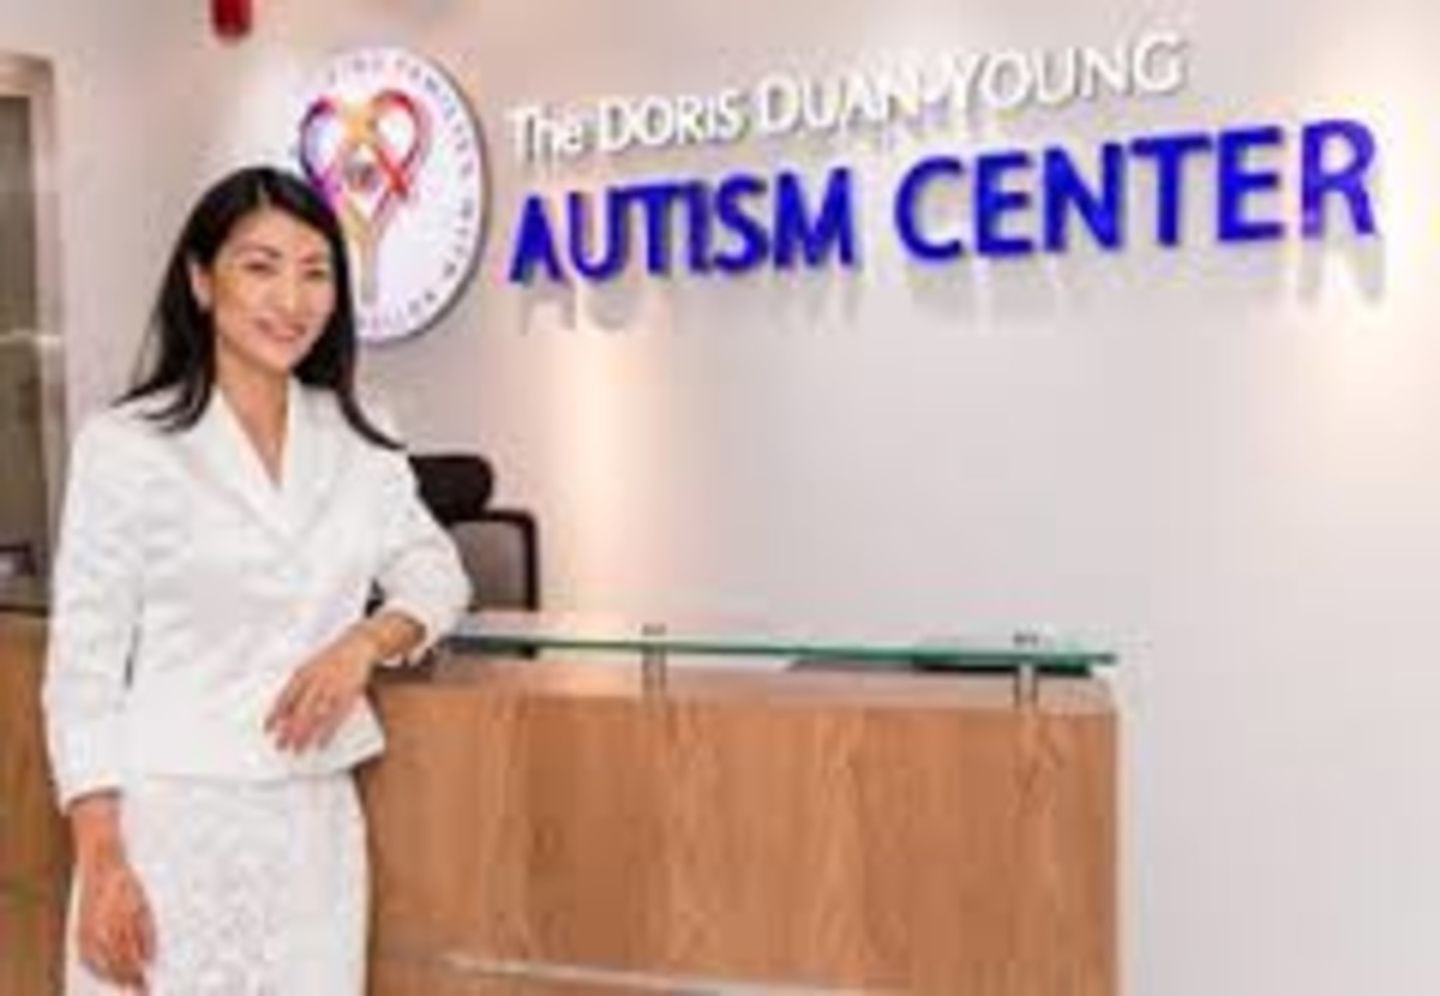 HiDubai-business-the-doris-daun-young-austism-center-beauty-wellness-health-specialty-clinics-dubai-healthcare-city-umm-hurair-2-dubai